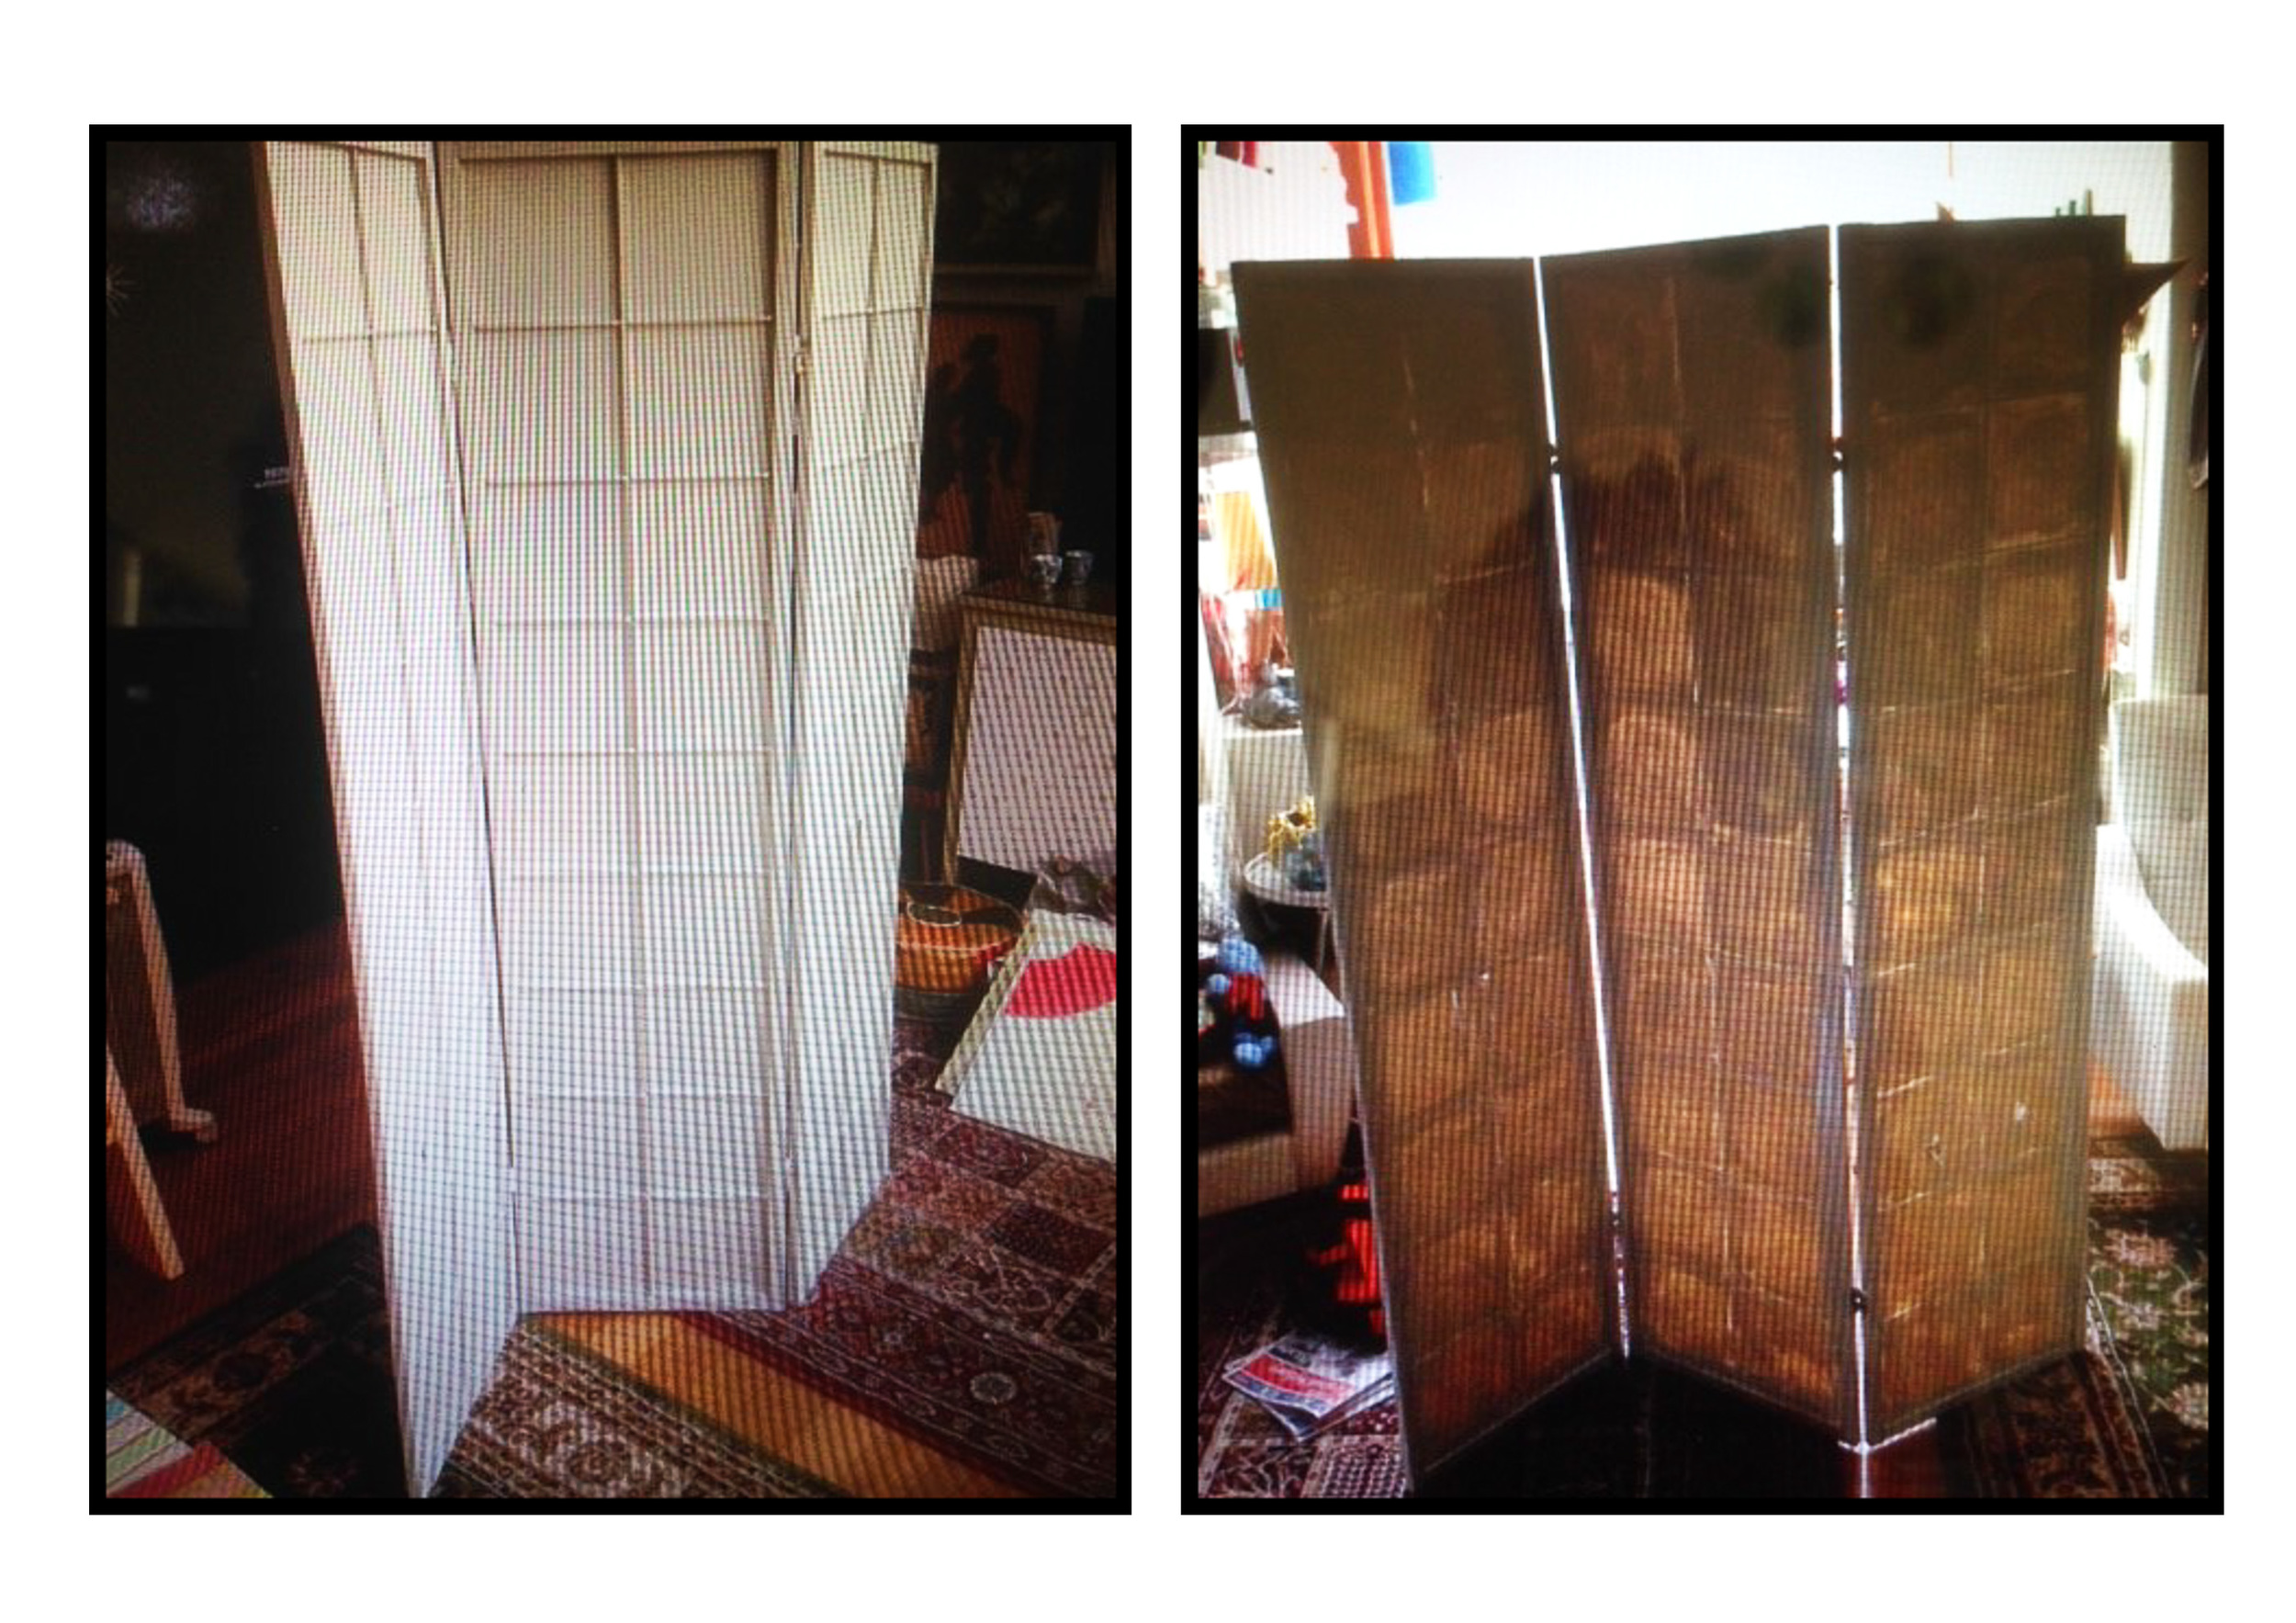 Kanen's Screen: Before and after a coat of white paint to brighten it up a bit.